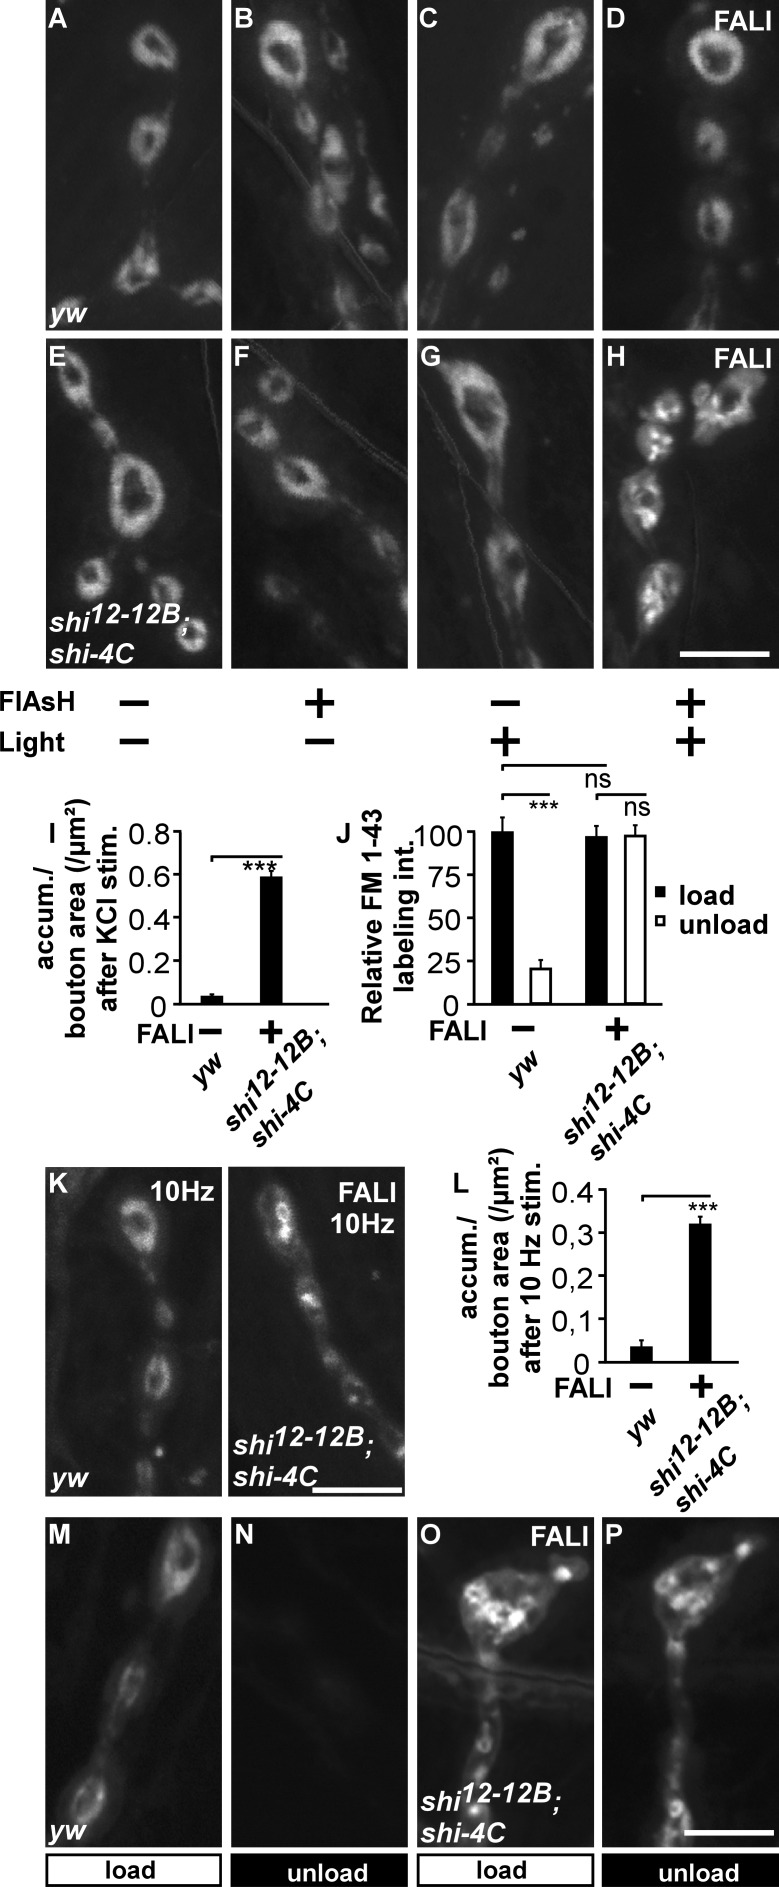 Photoinactivation of Dynamin results in the formation of large membrane inclusions.  (A–H) FM 1-43 labeling in  yw  and  shi 12-12B ;  shi-4C  animals treated (+) or not treated (−) with FlAsH for 10 min and/or illumination for 2 min (±). All preparations were stimulated with KCl in the presence of FM 1-43 for 5 min. (I) Quantification of the number of FM 1-43–labeled membrane accumulations (accum.) per boutonic area in  yw  controls ( n  = 72 boutons from eight larvae) and in  shi 12-12B ;  shi-4C  after FALI ( n  = 72 boutons from 16 larvae). Error bars show SEMs;  t  test: ***, P